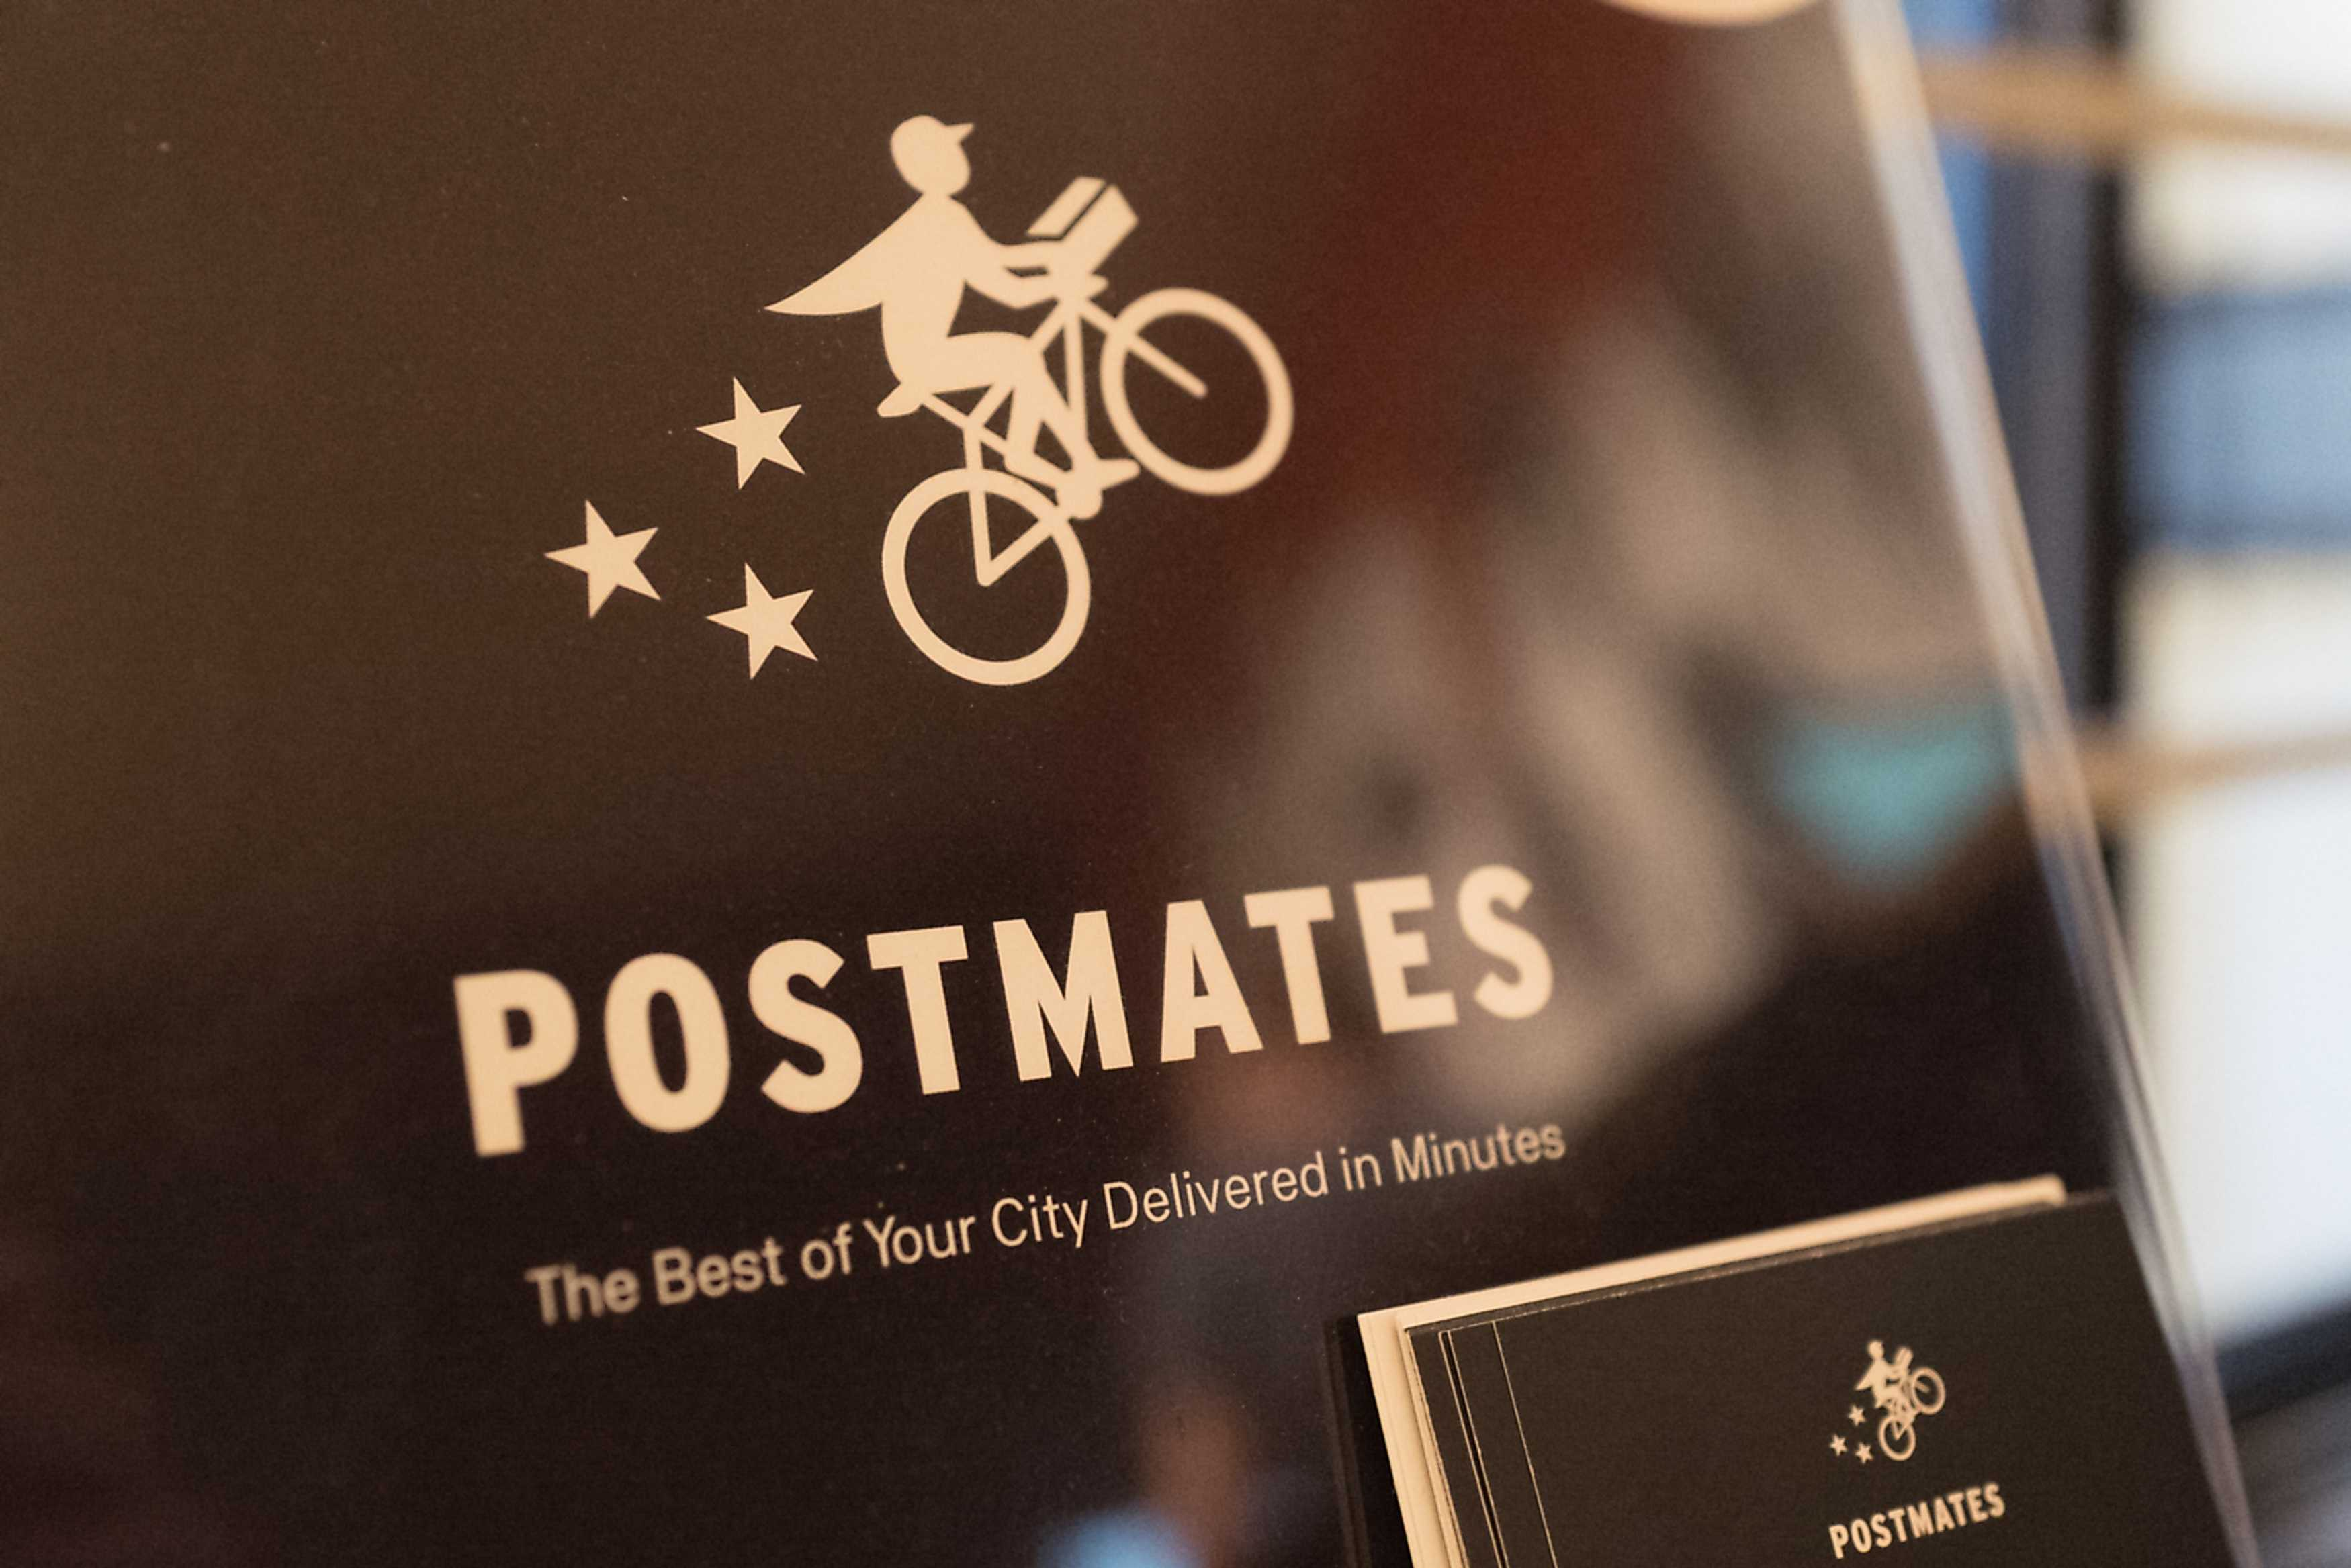 Ford and Postmates team up to explore self-driving technologies